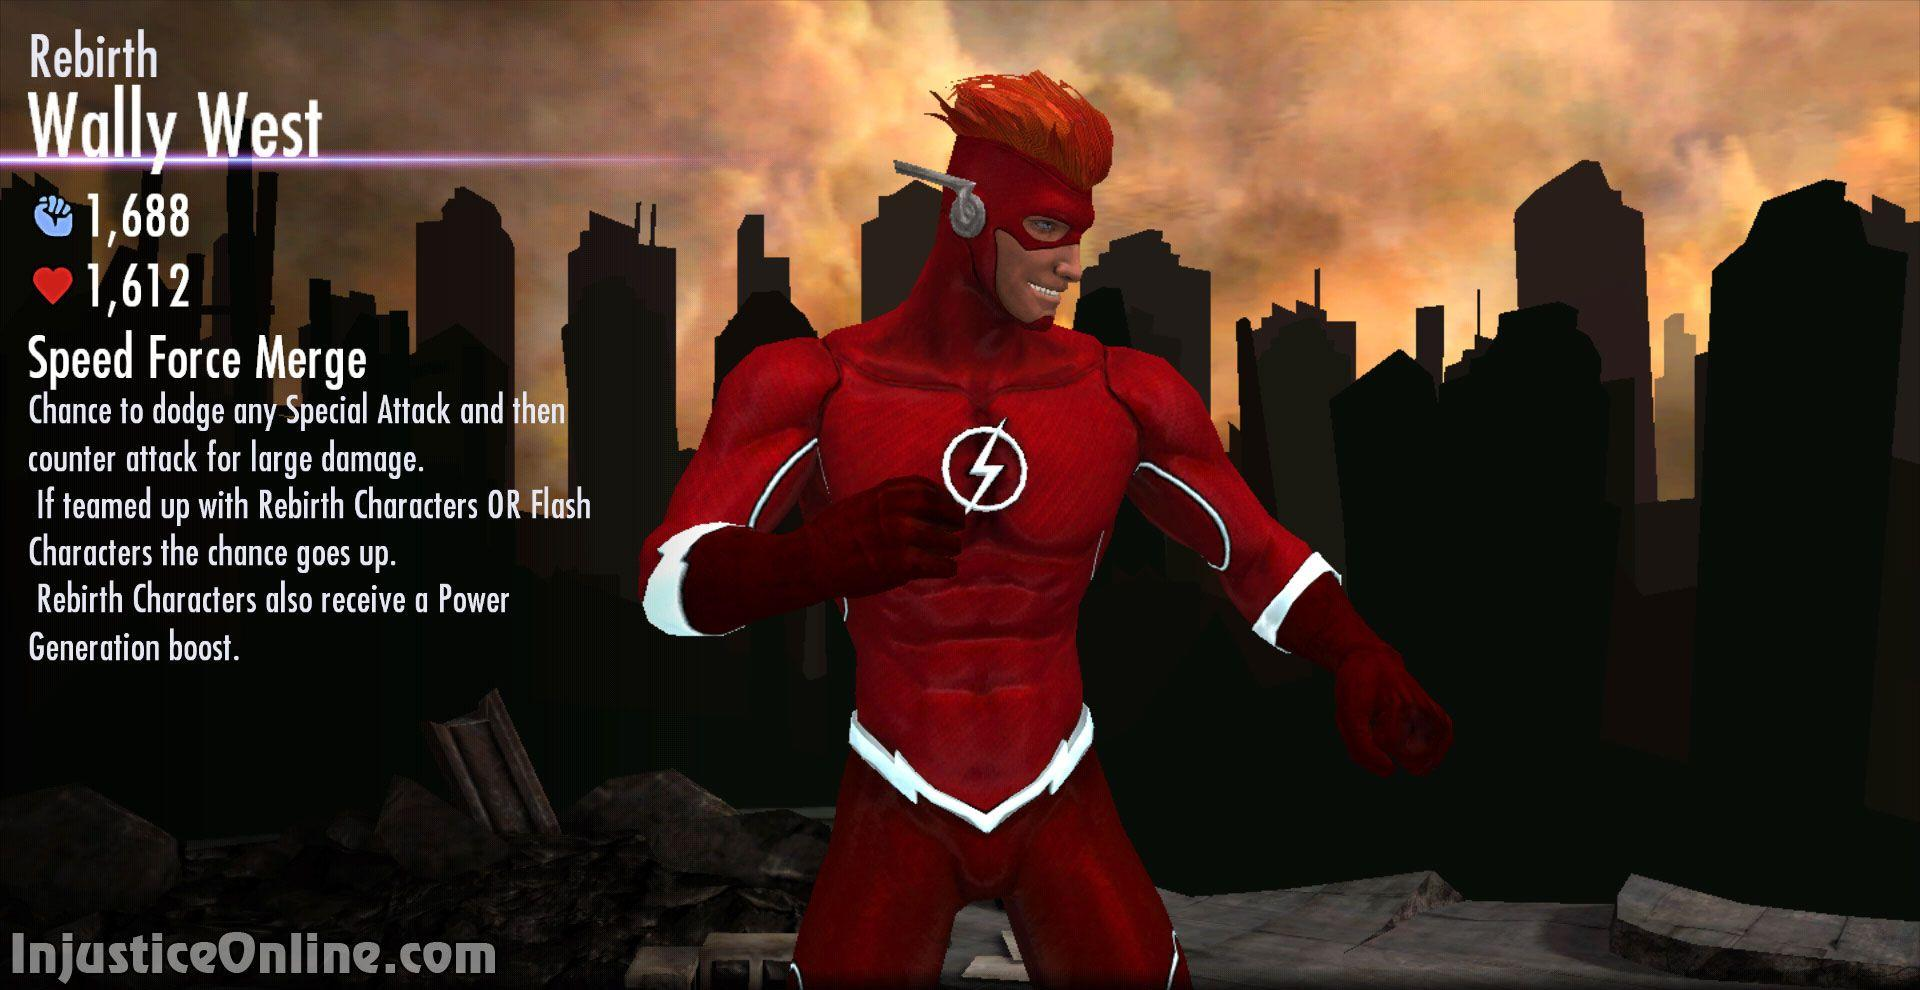 Rebirth Wally West Multiplayer Challenge For Injustice Mobile